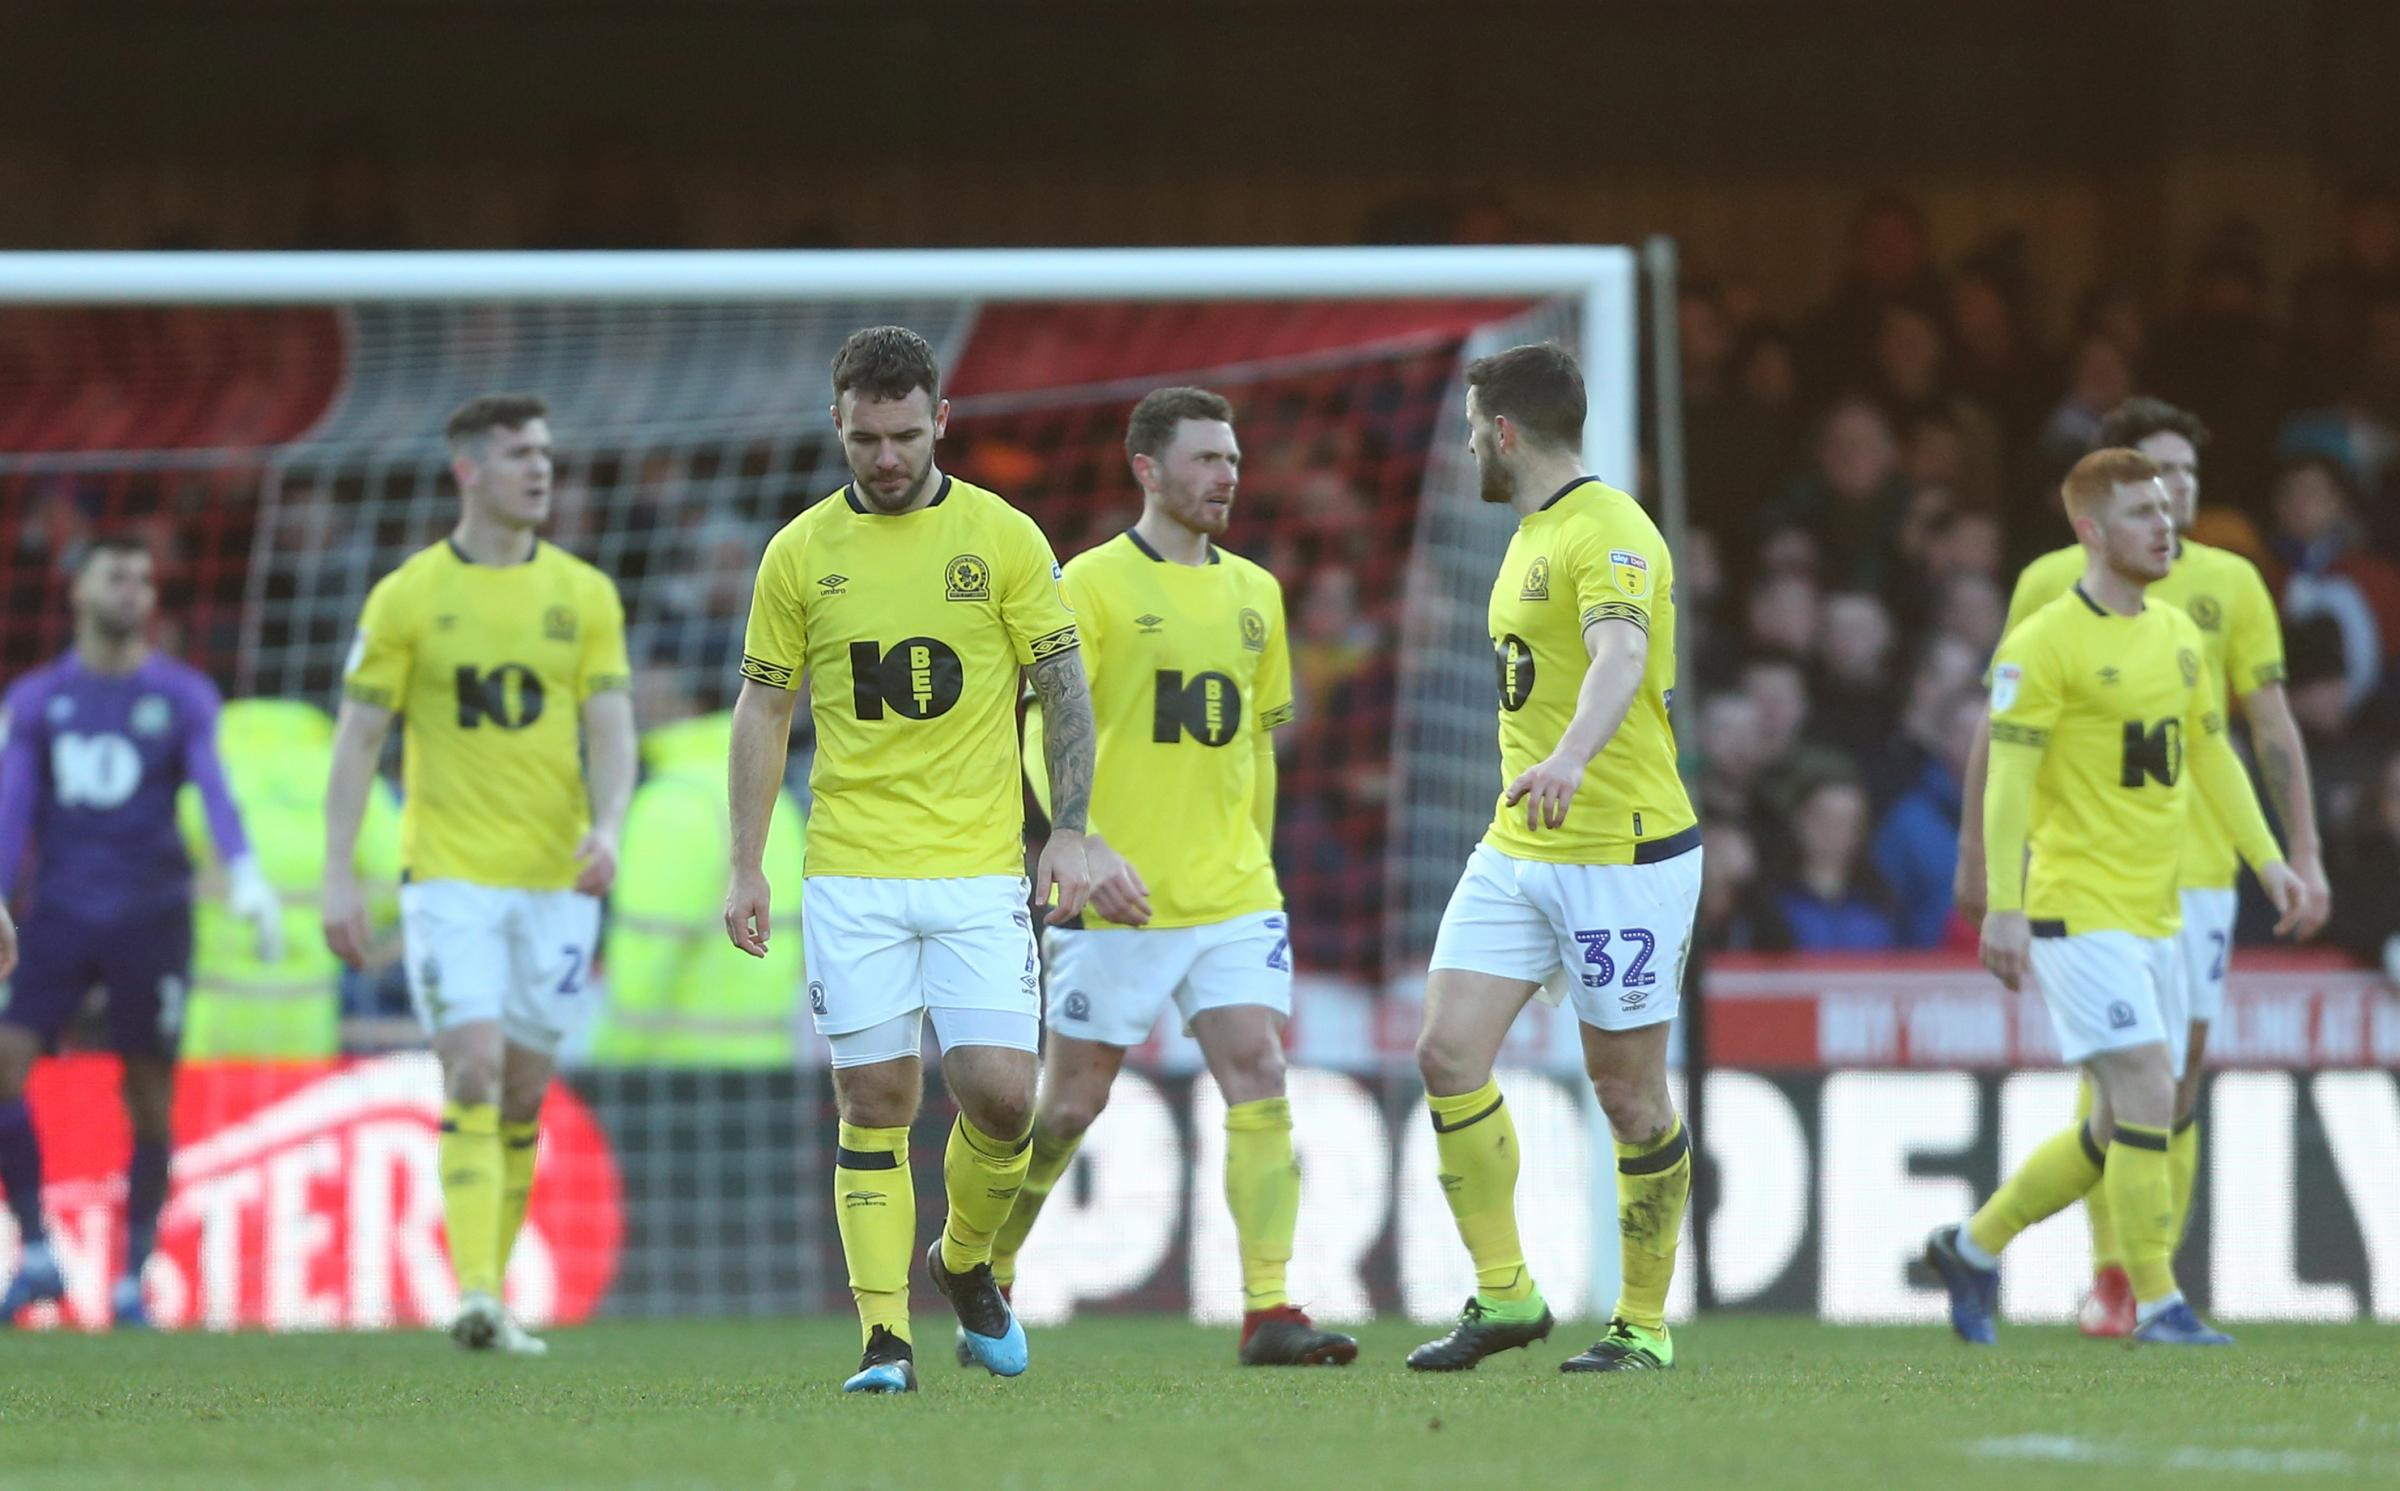 Rovers let a 2-0 lead slip in their heavy defeat at Brentford